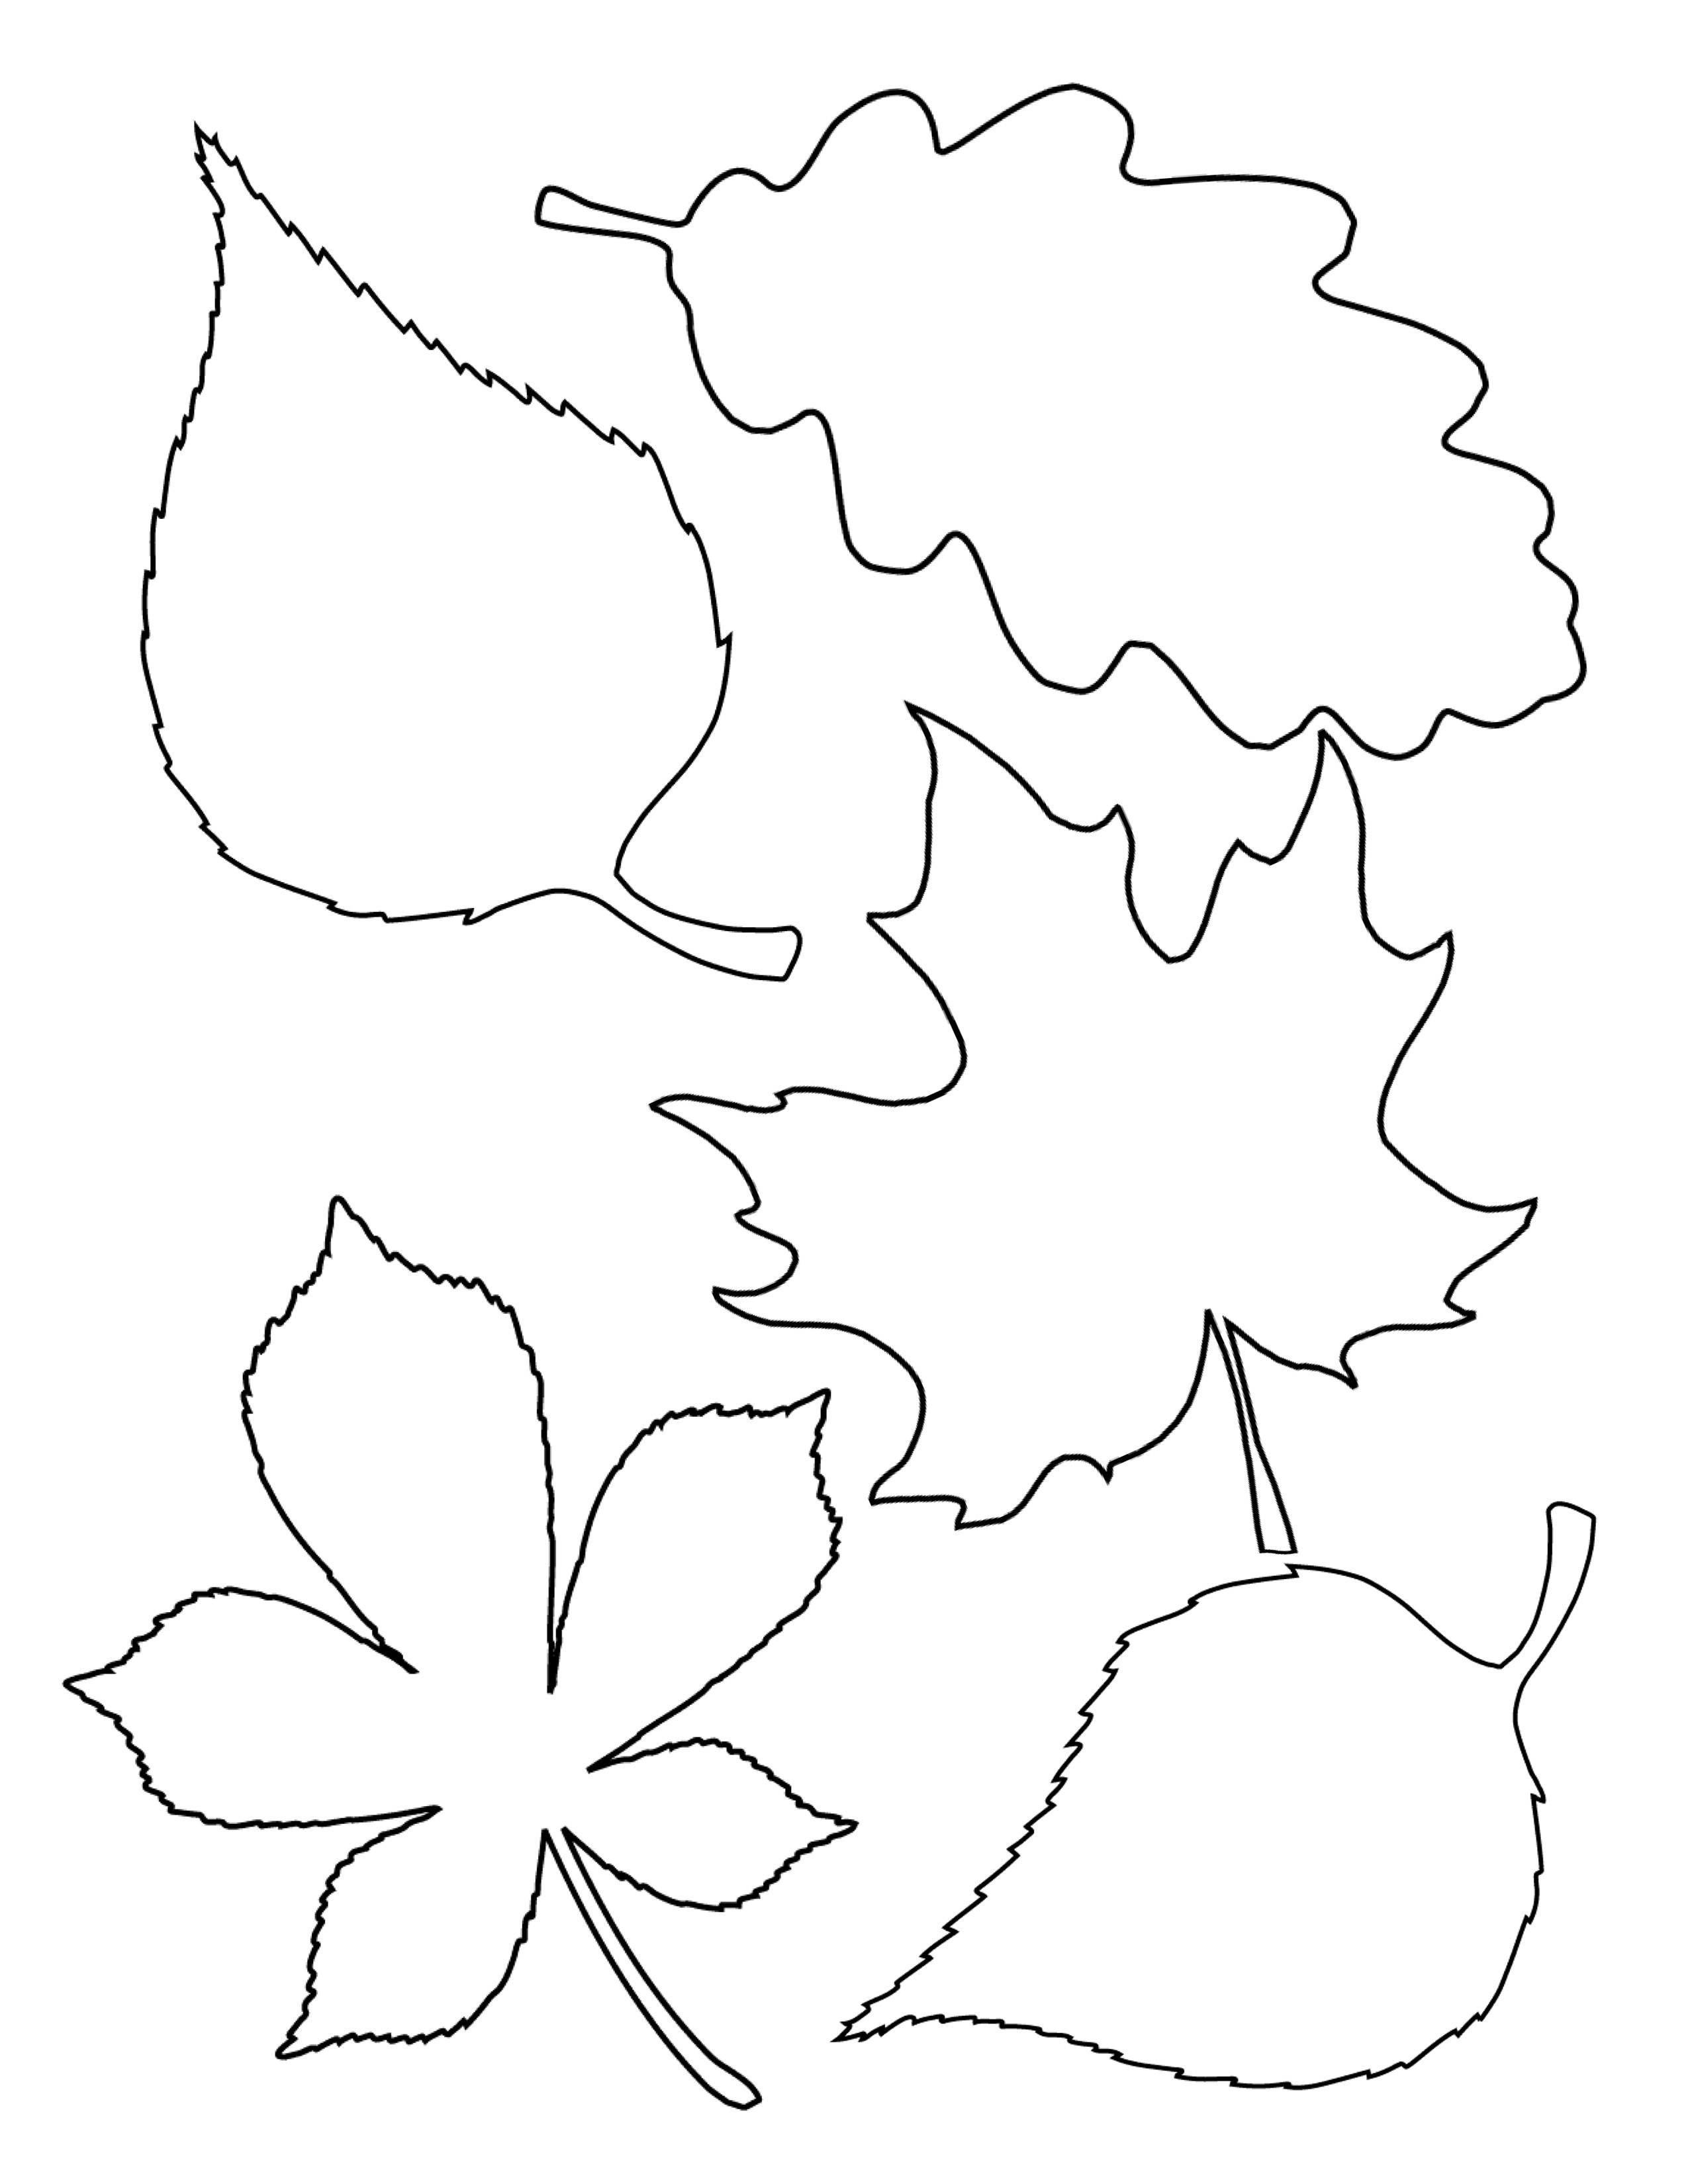 Simple leaf template images amp pictures becuo